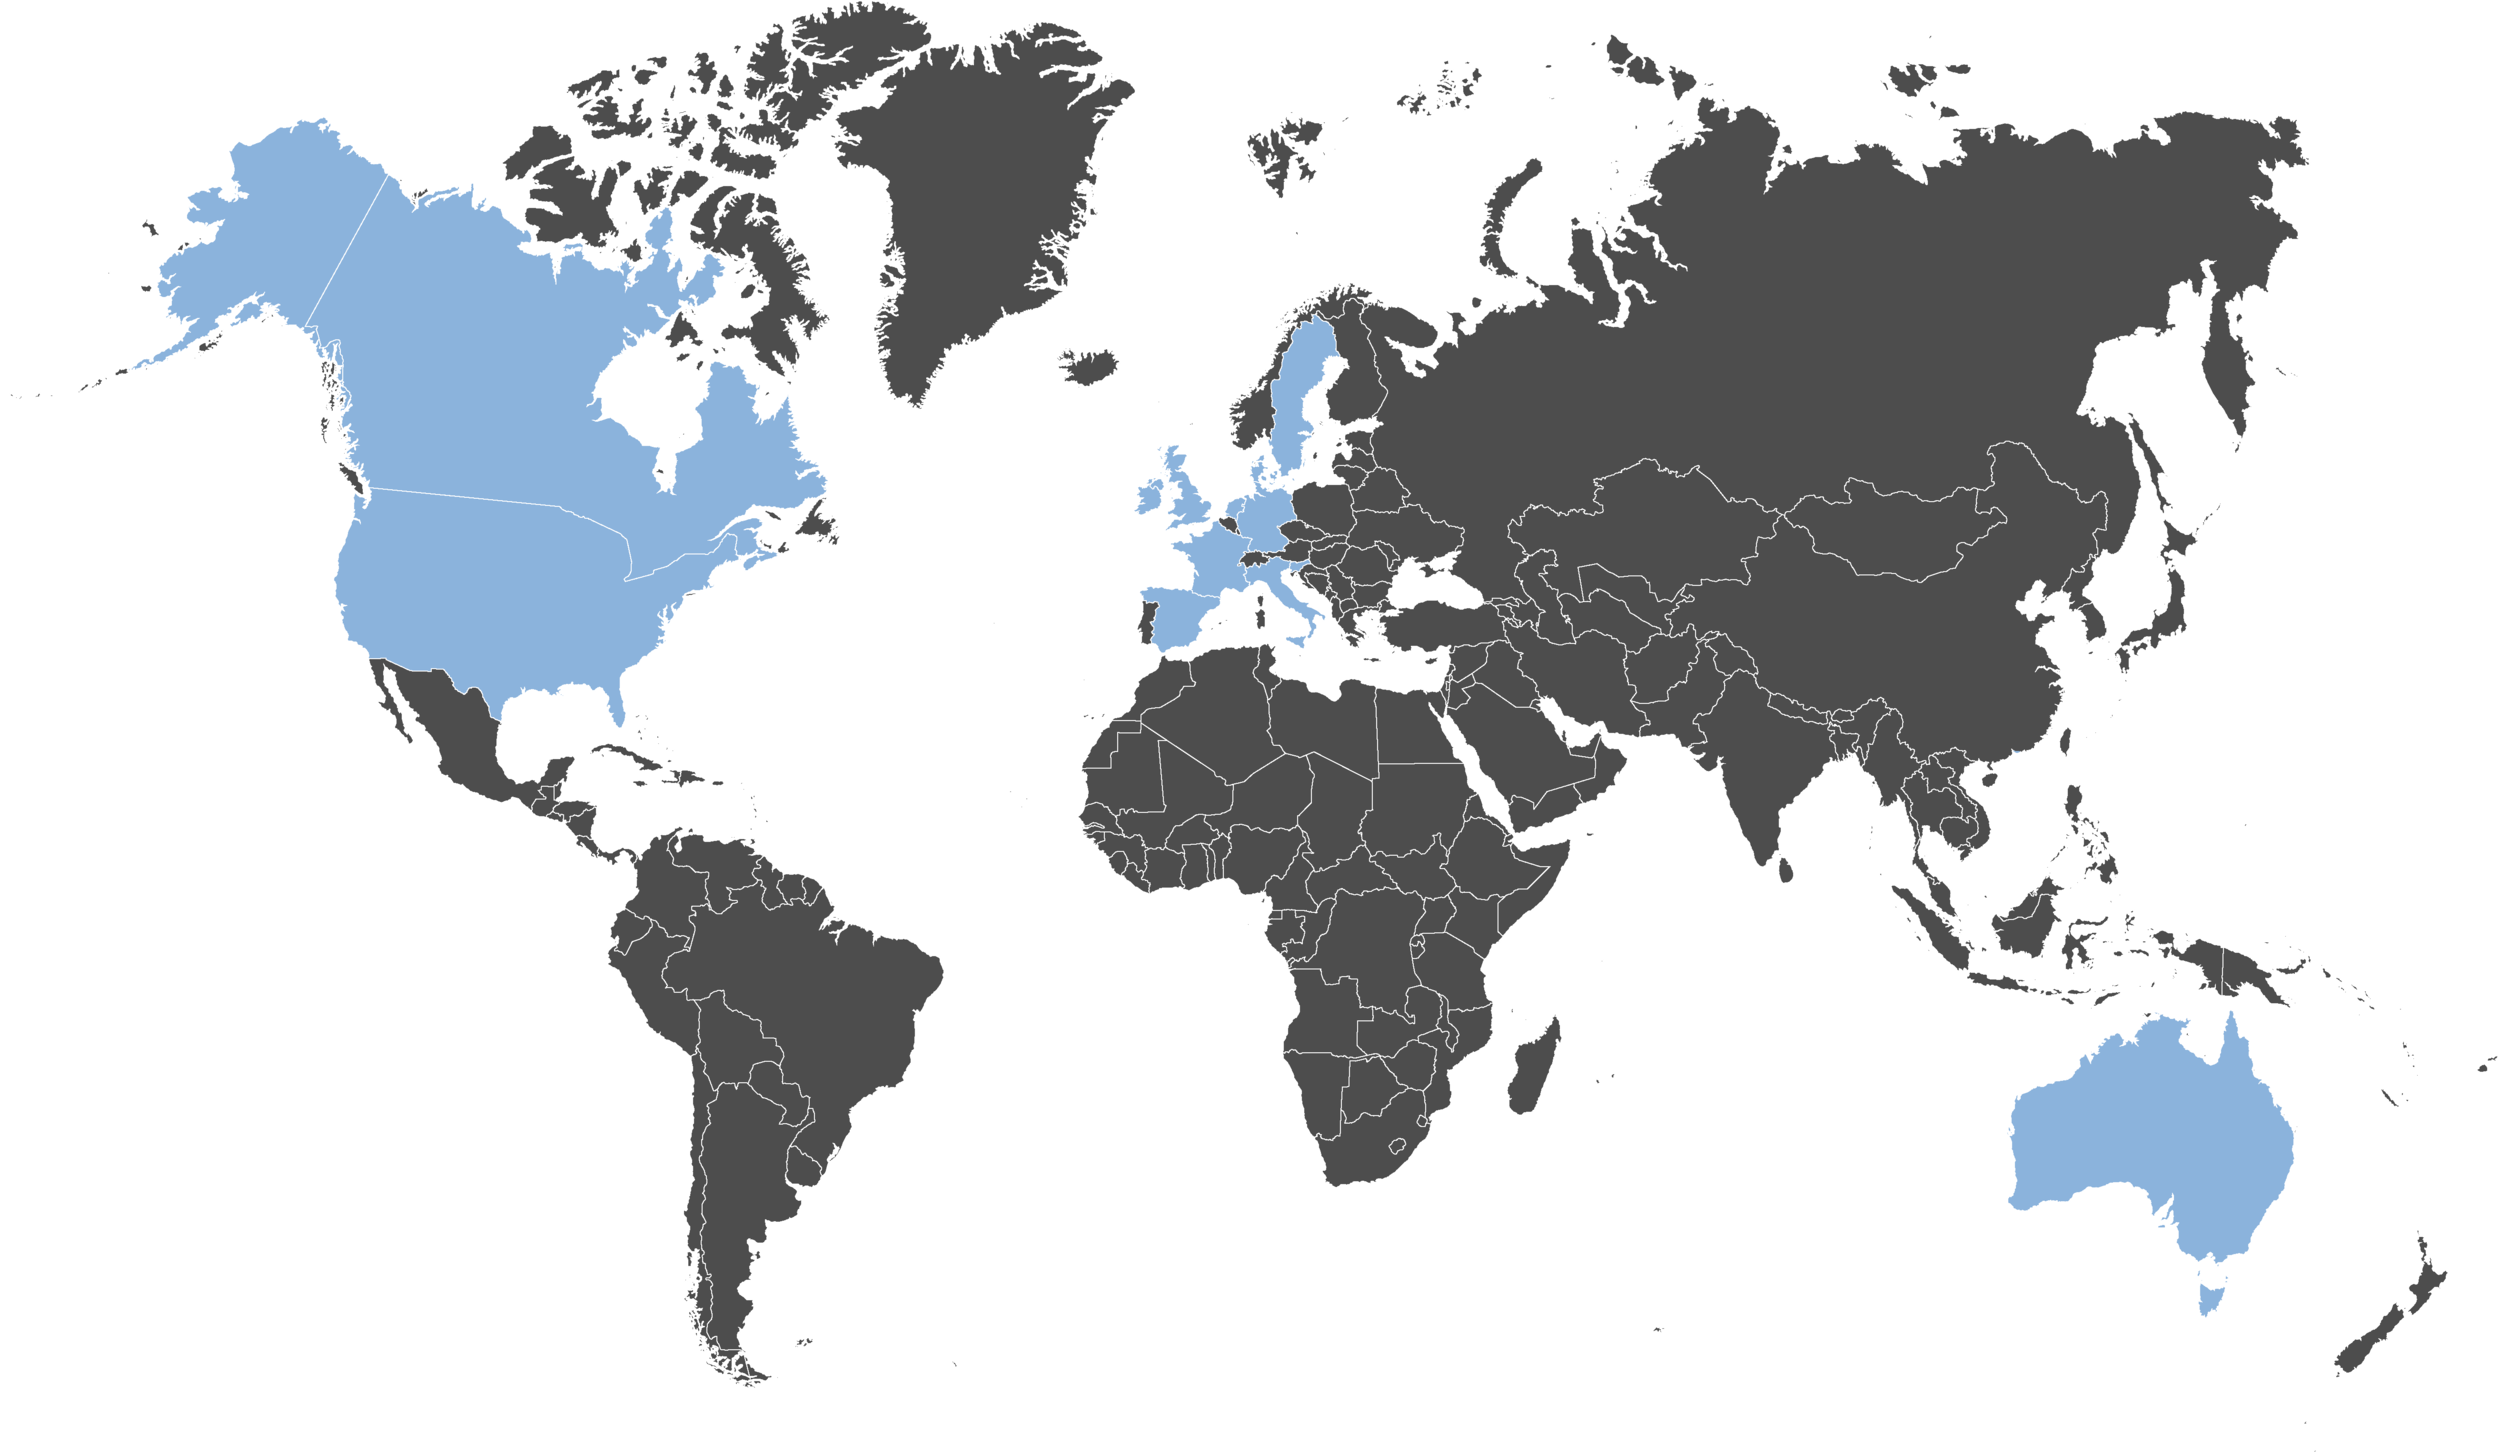 Worldwide Distribution Network - We have distribution partners throughout Europe, North America and the Pacific, insuring we have a global reach. Check your location for a distribution partner here: